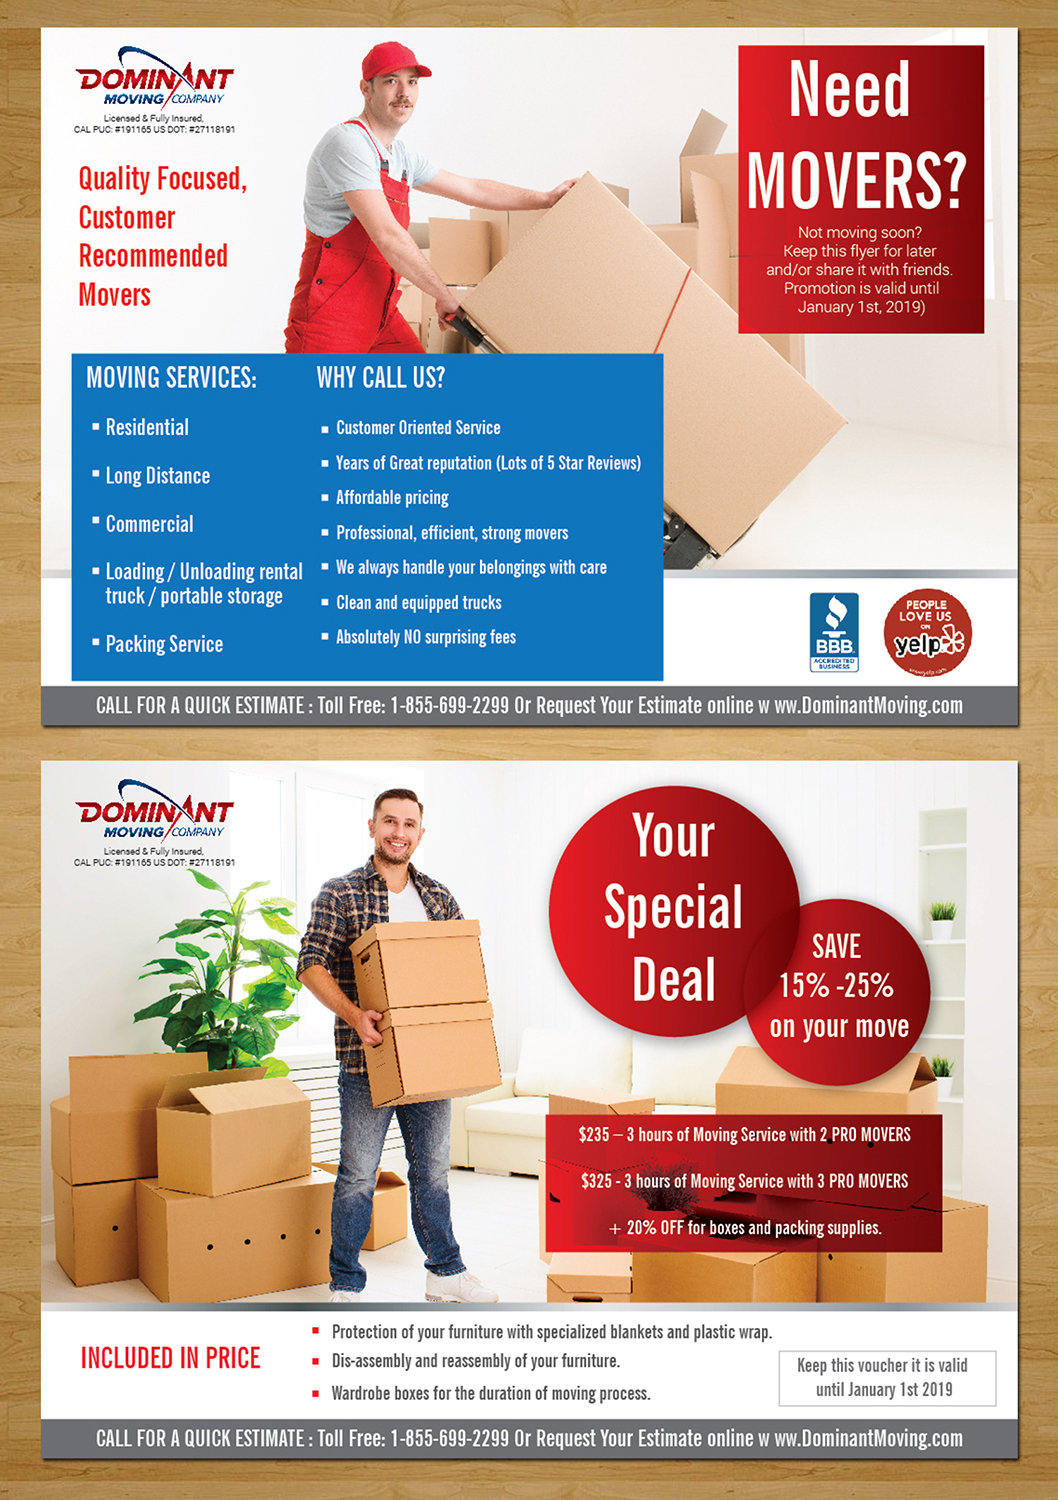 flyer design by designanddevelopment for dominant moving systems design 12130615